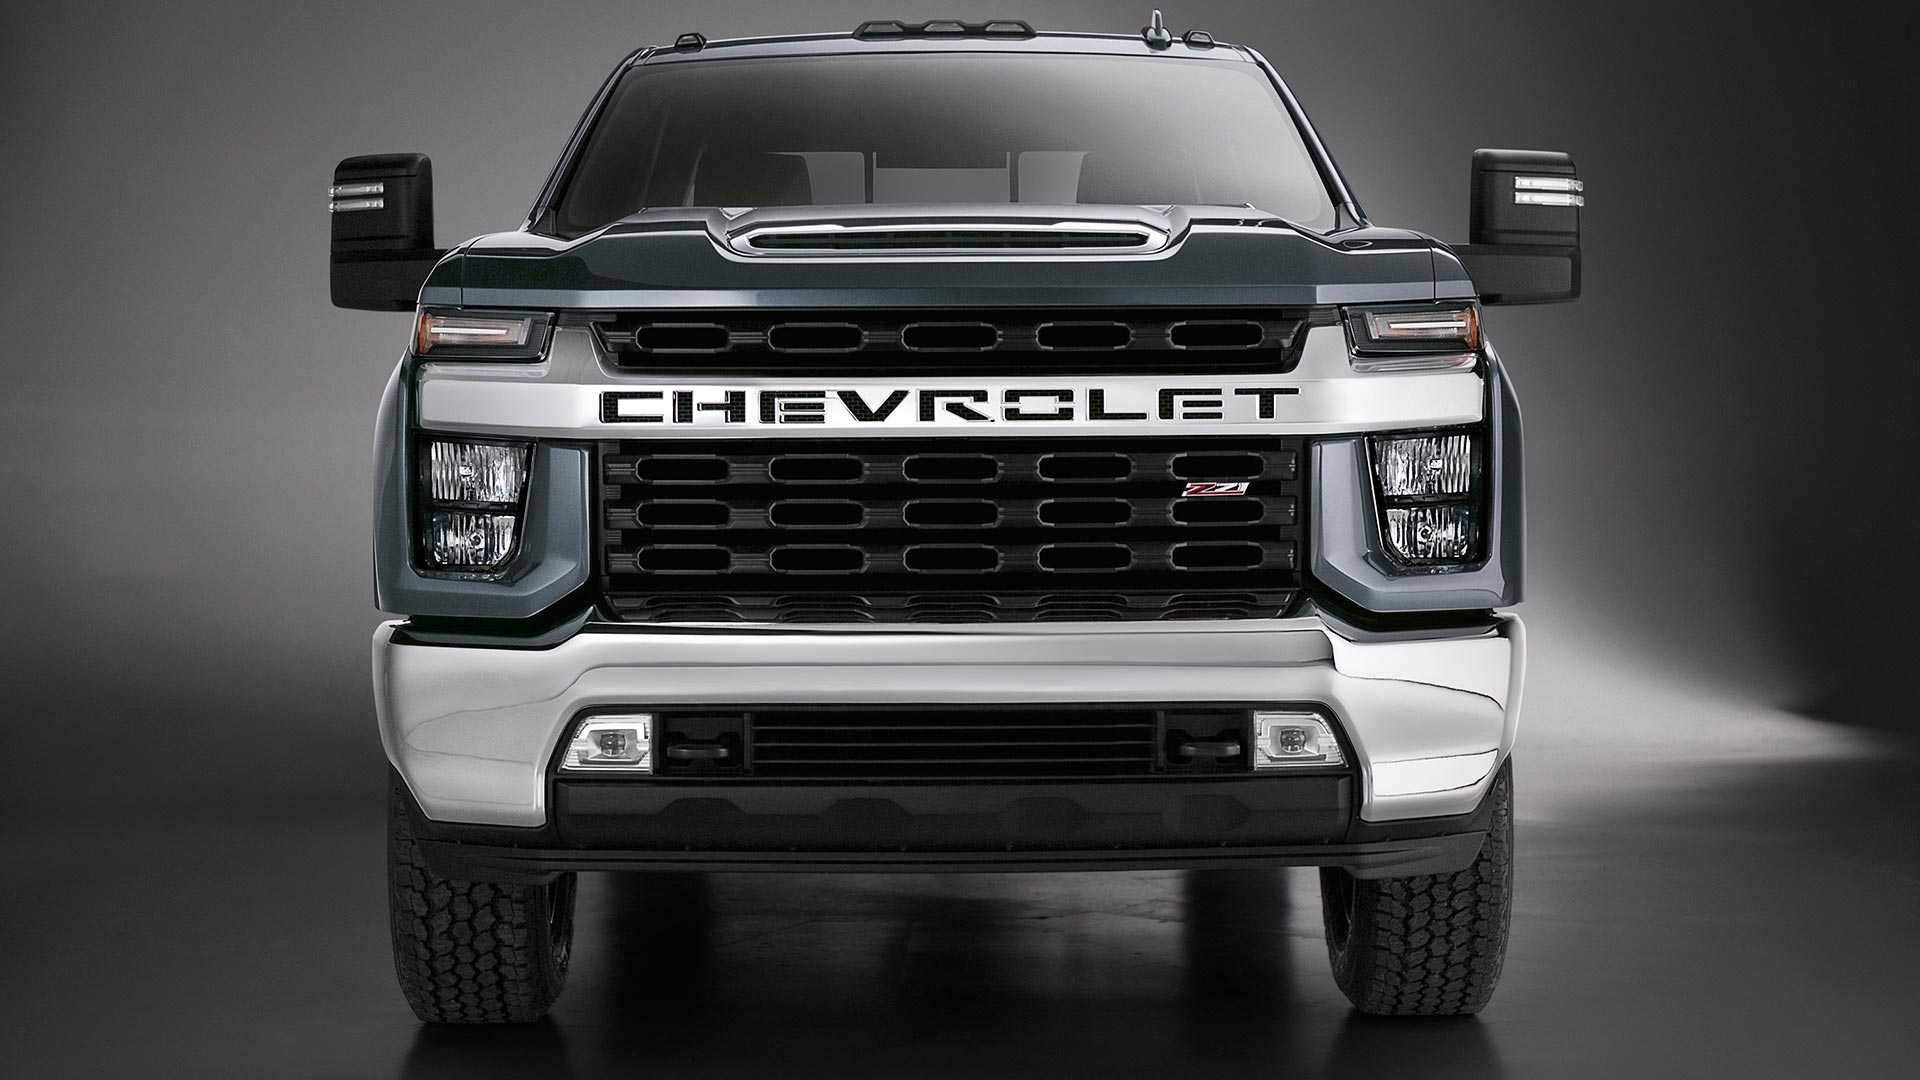 35 Gallery of Chevrolet Duramax 2020 Overview for Chevrolet Duramax 2020